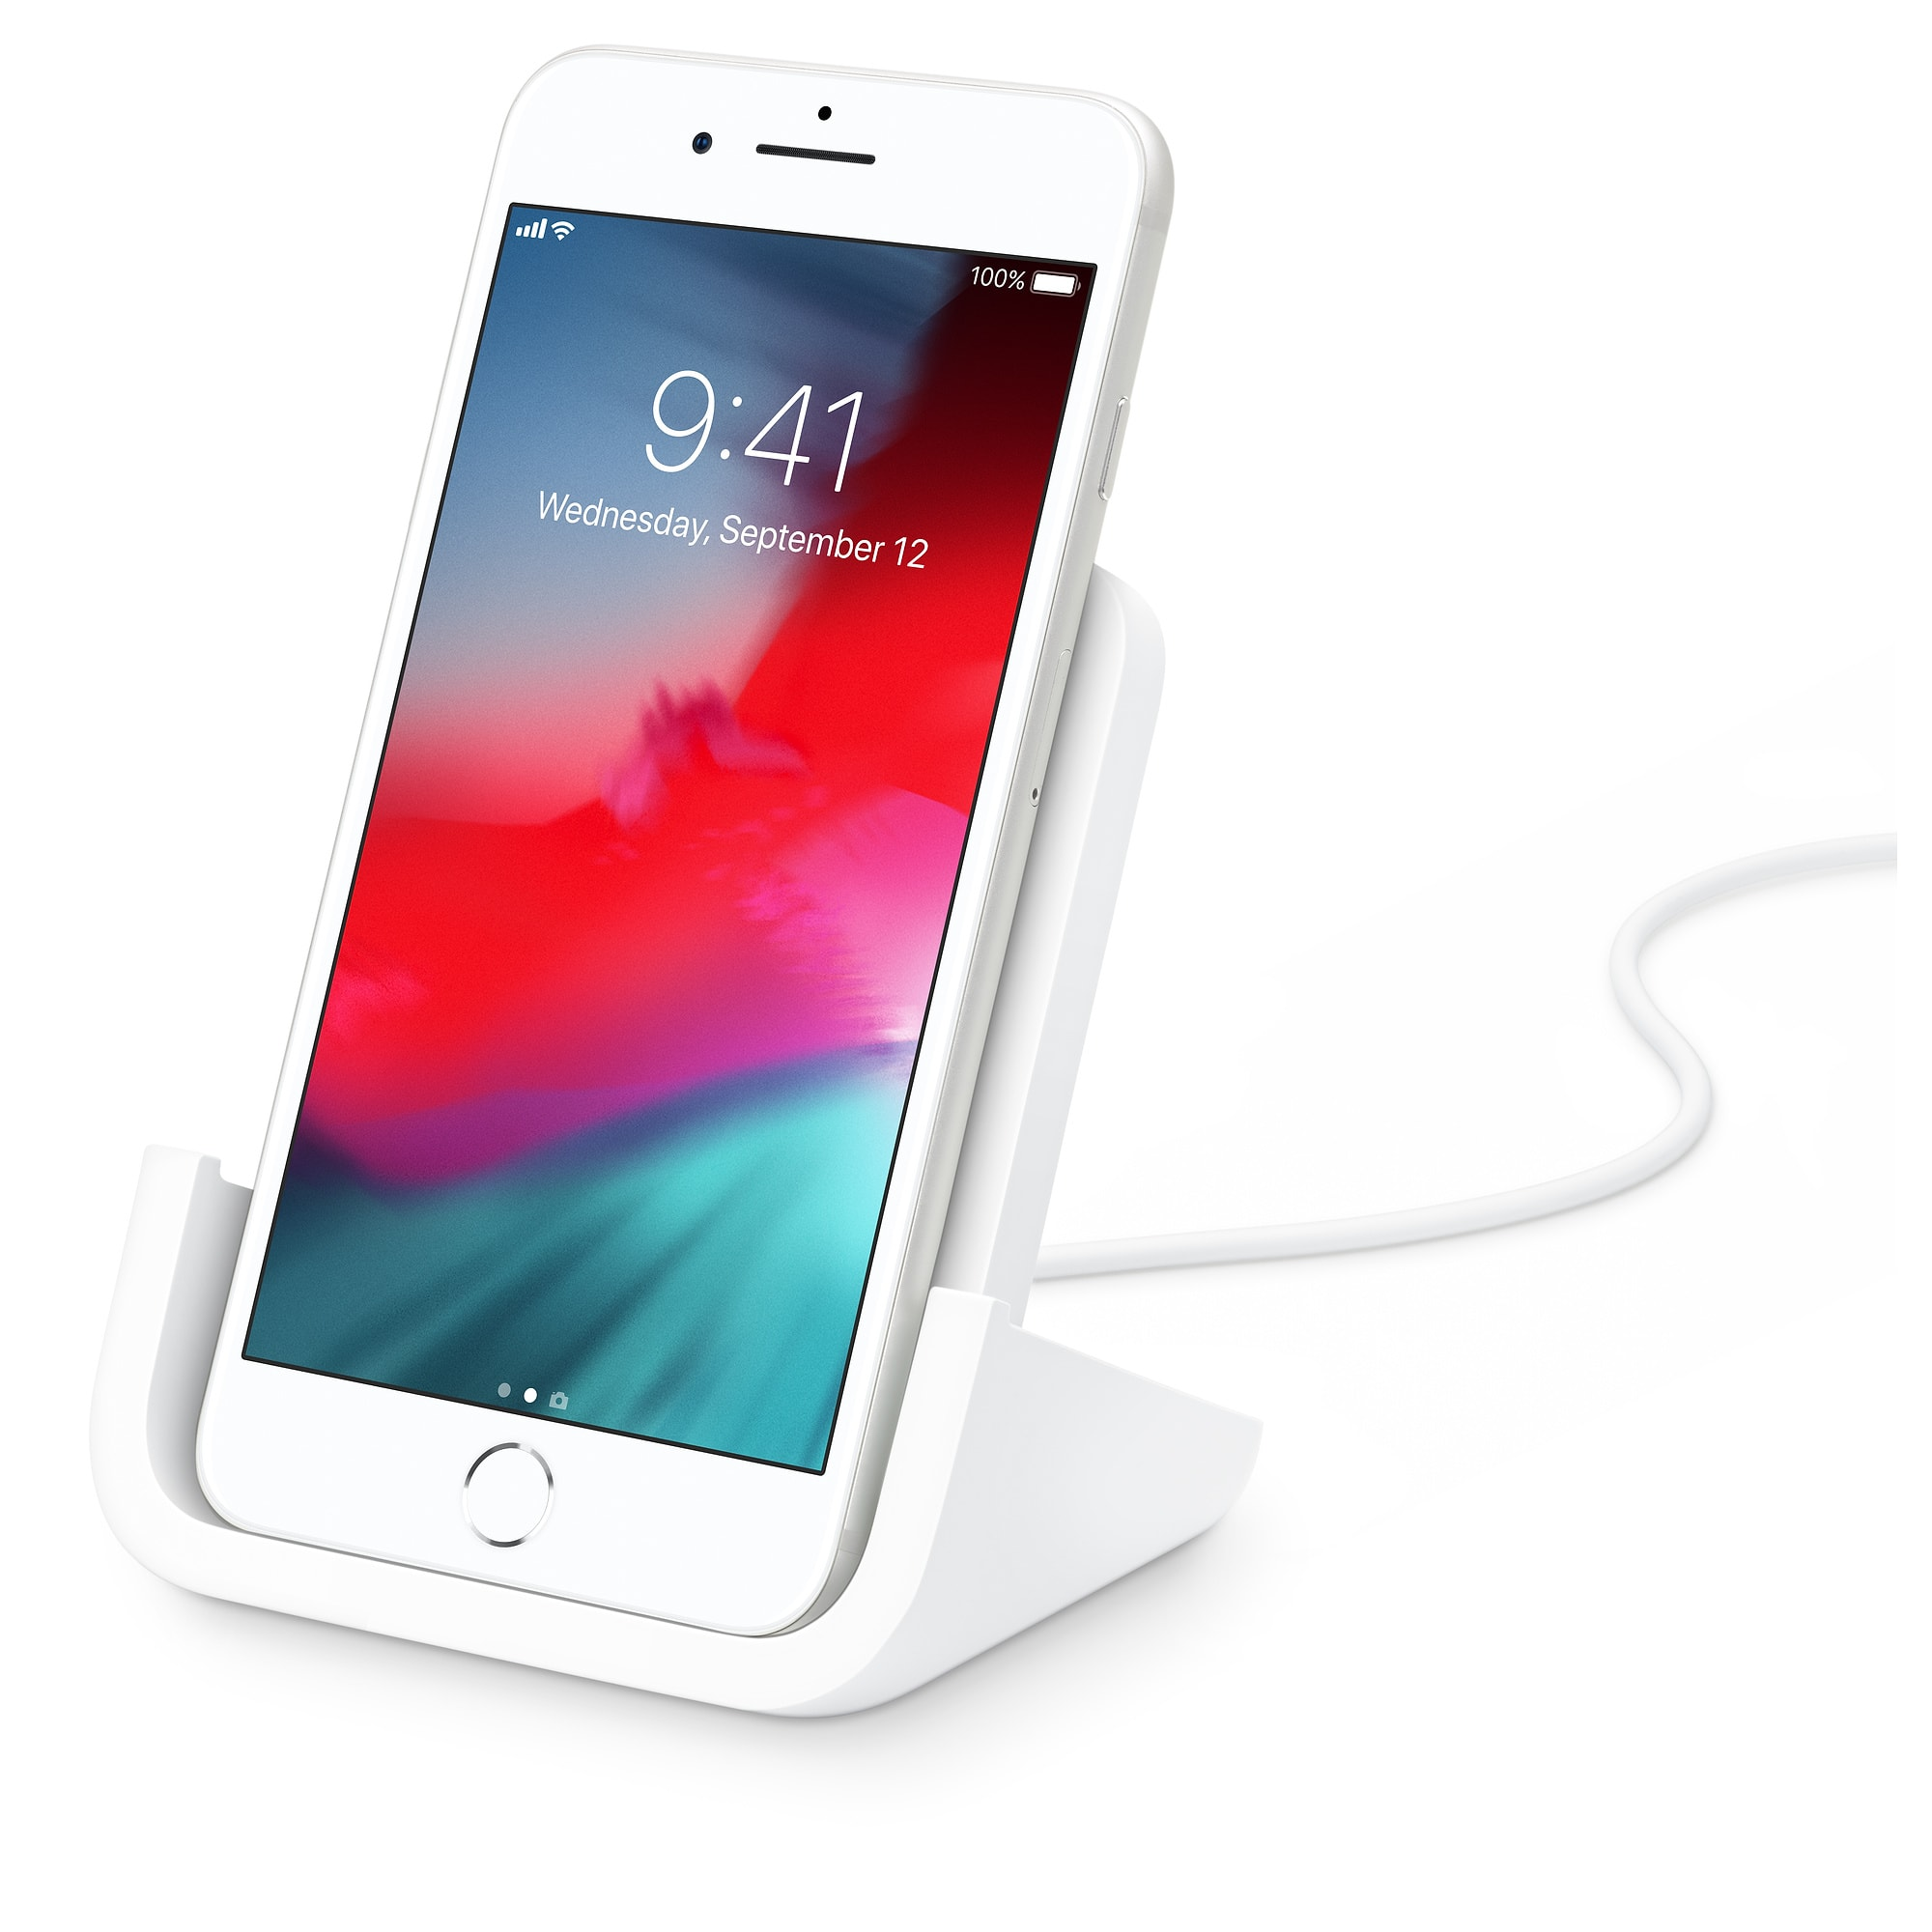 8830fa4af84 Prime Day: Logitech Powered - Wireless Charging Stand for iPhone 8 and  above $39.99 + free ship - Slickdeals.net